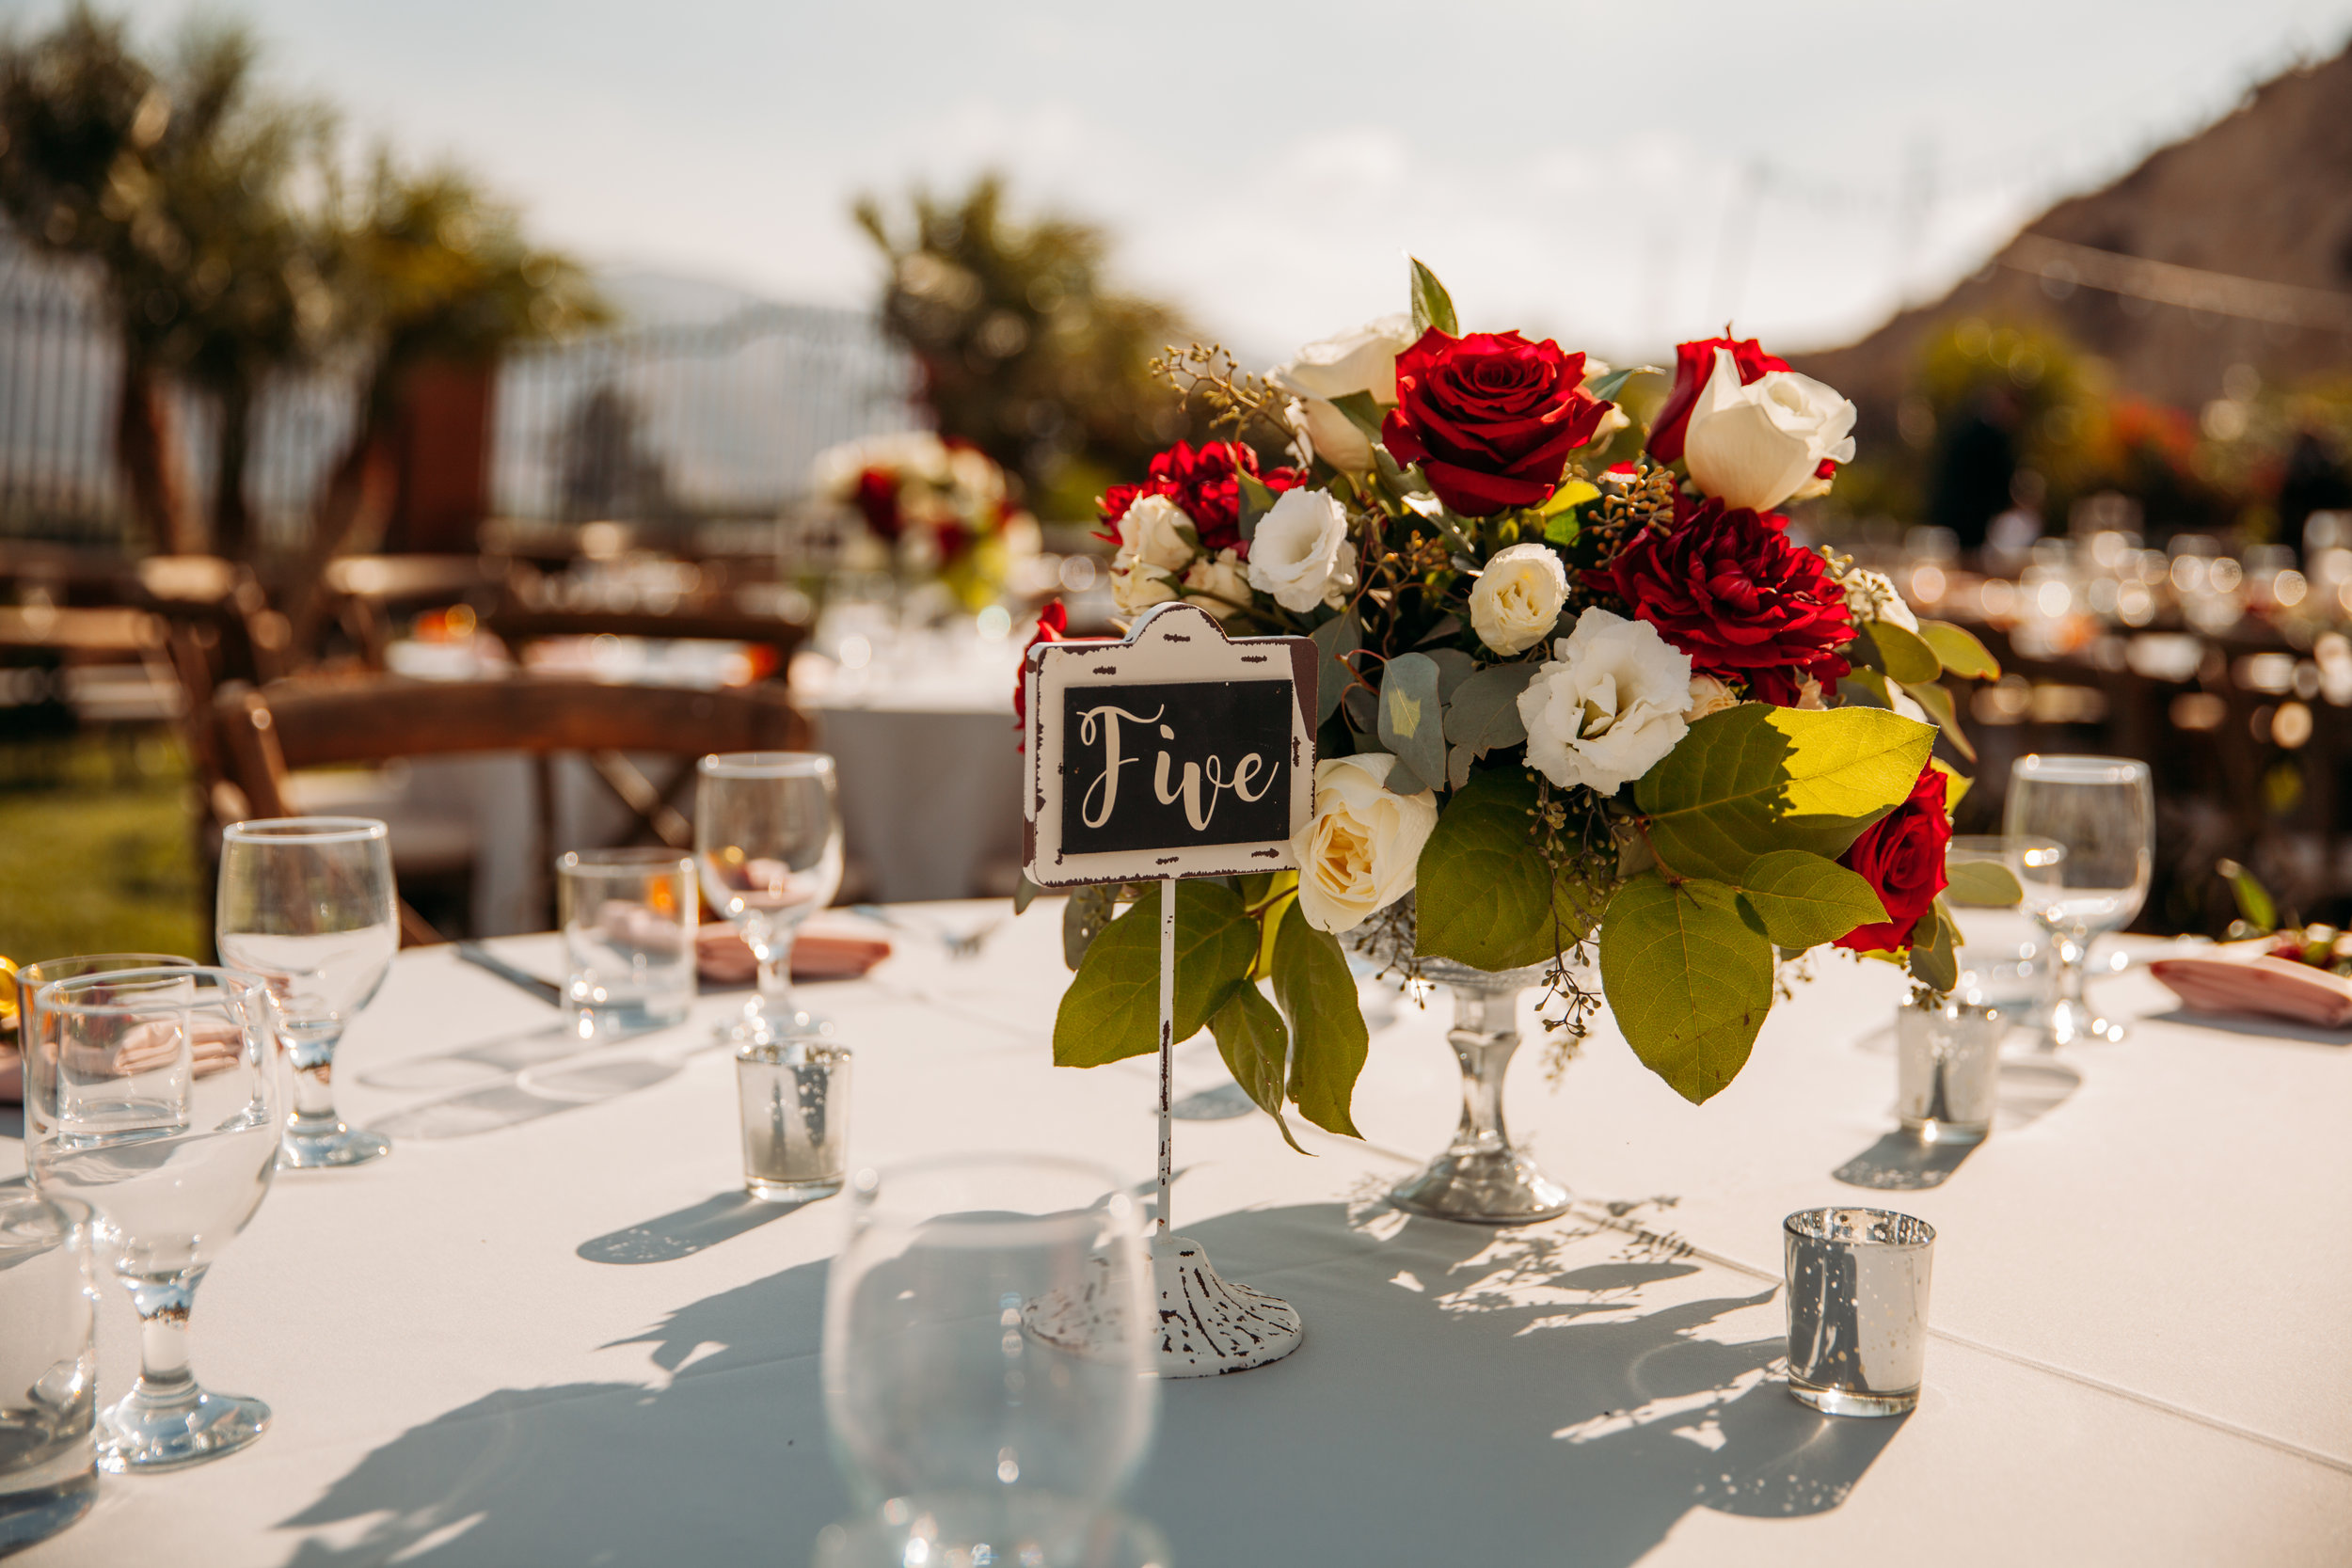 A rose and acorn studded DIY centerpiece on a white table at an outdoor reception.